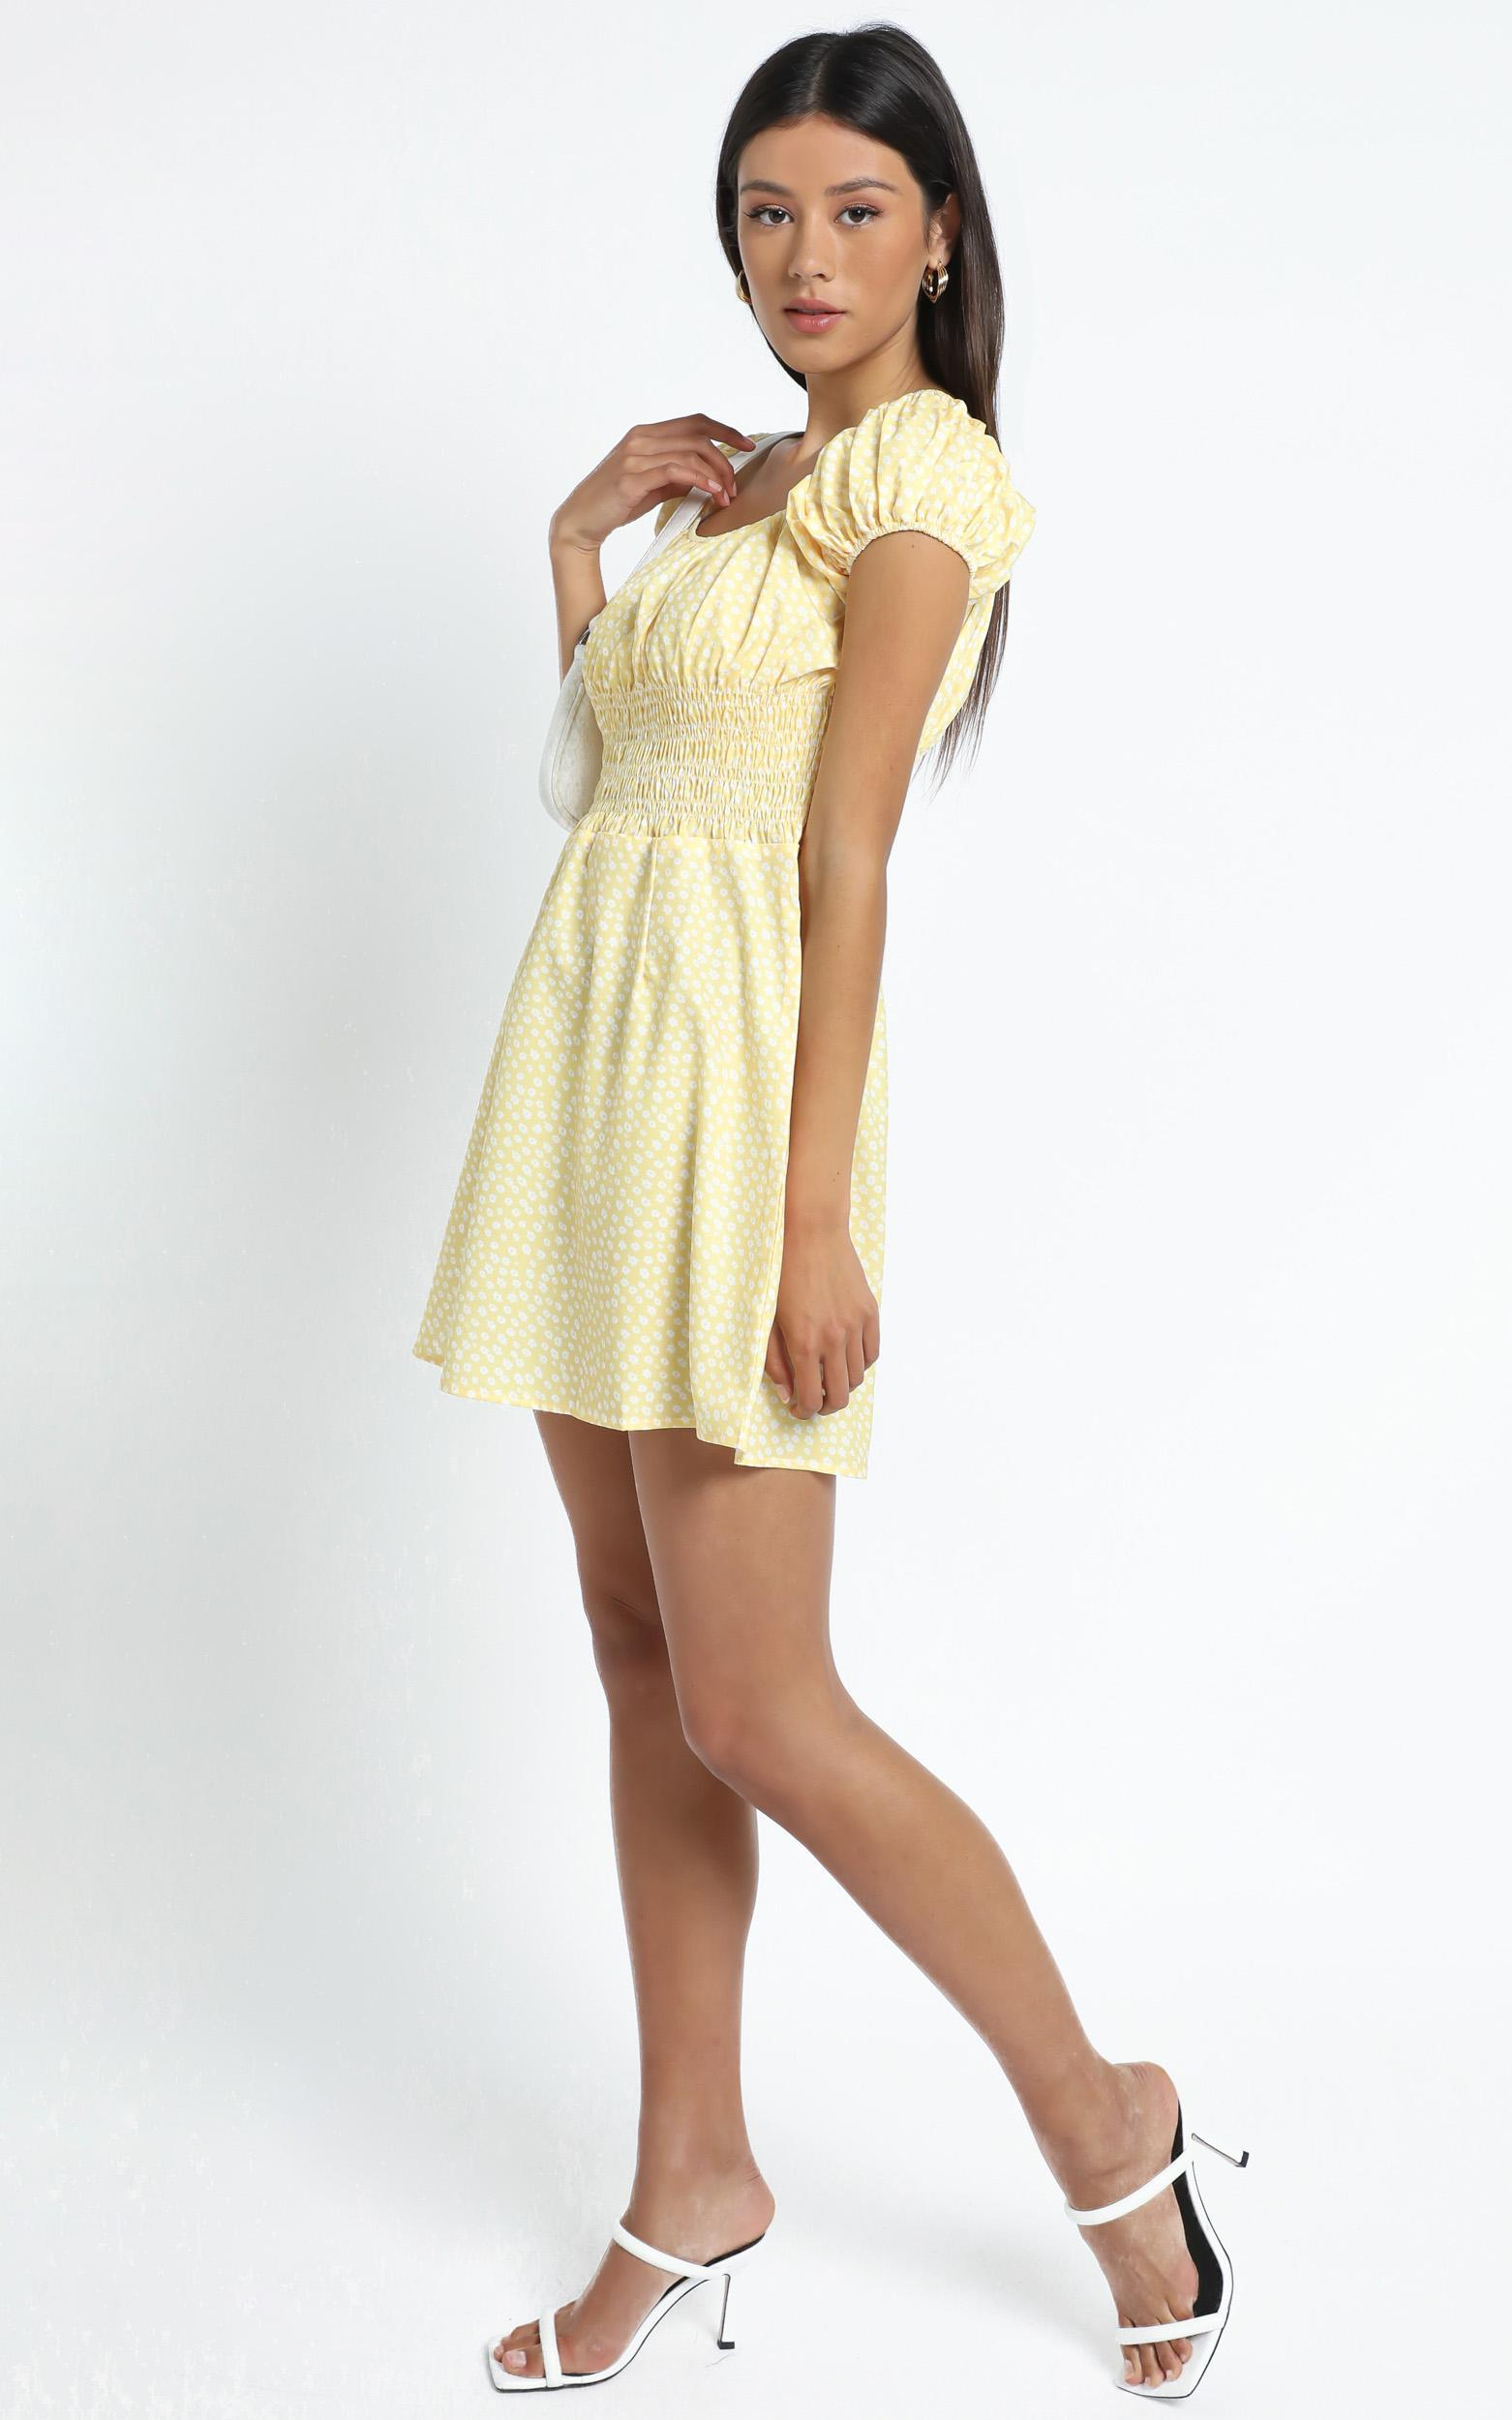 Hilary Dress in Yellow Floral - 12 (L), Yellow, hi-res image number null